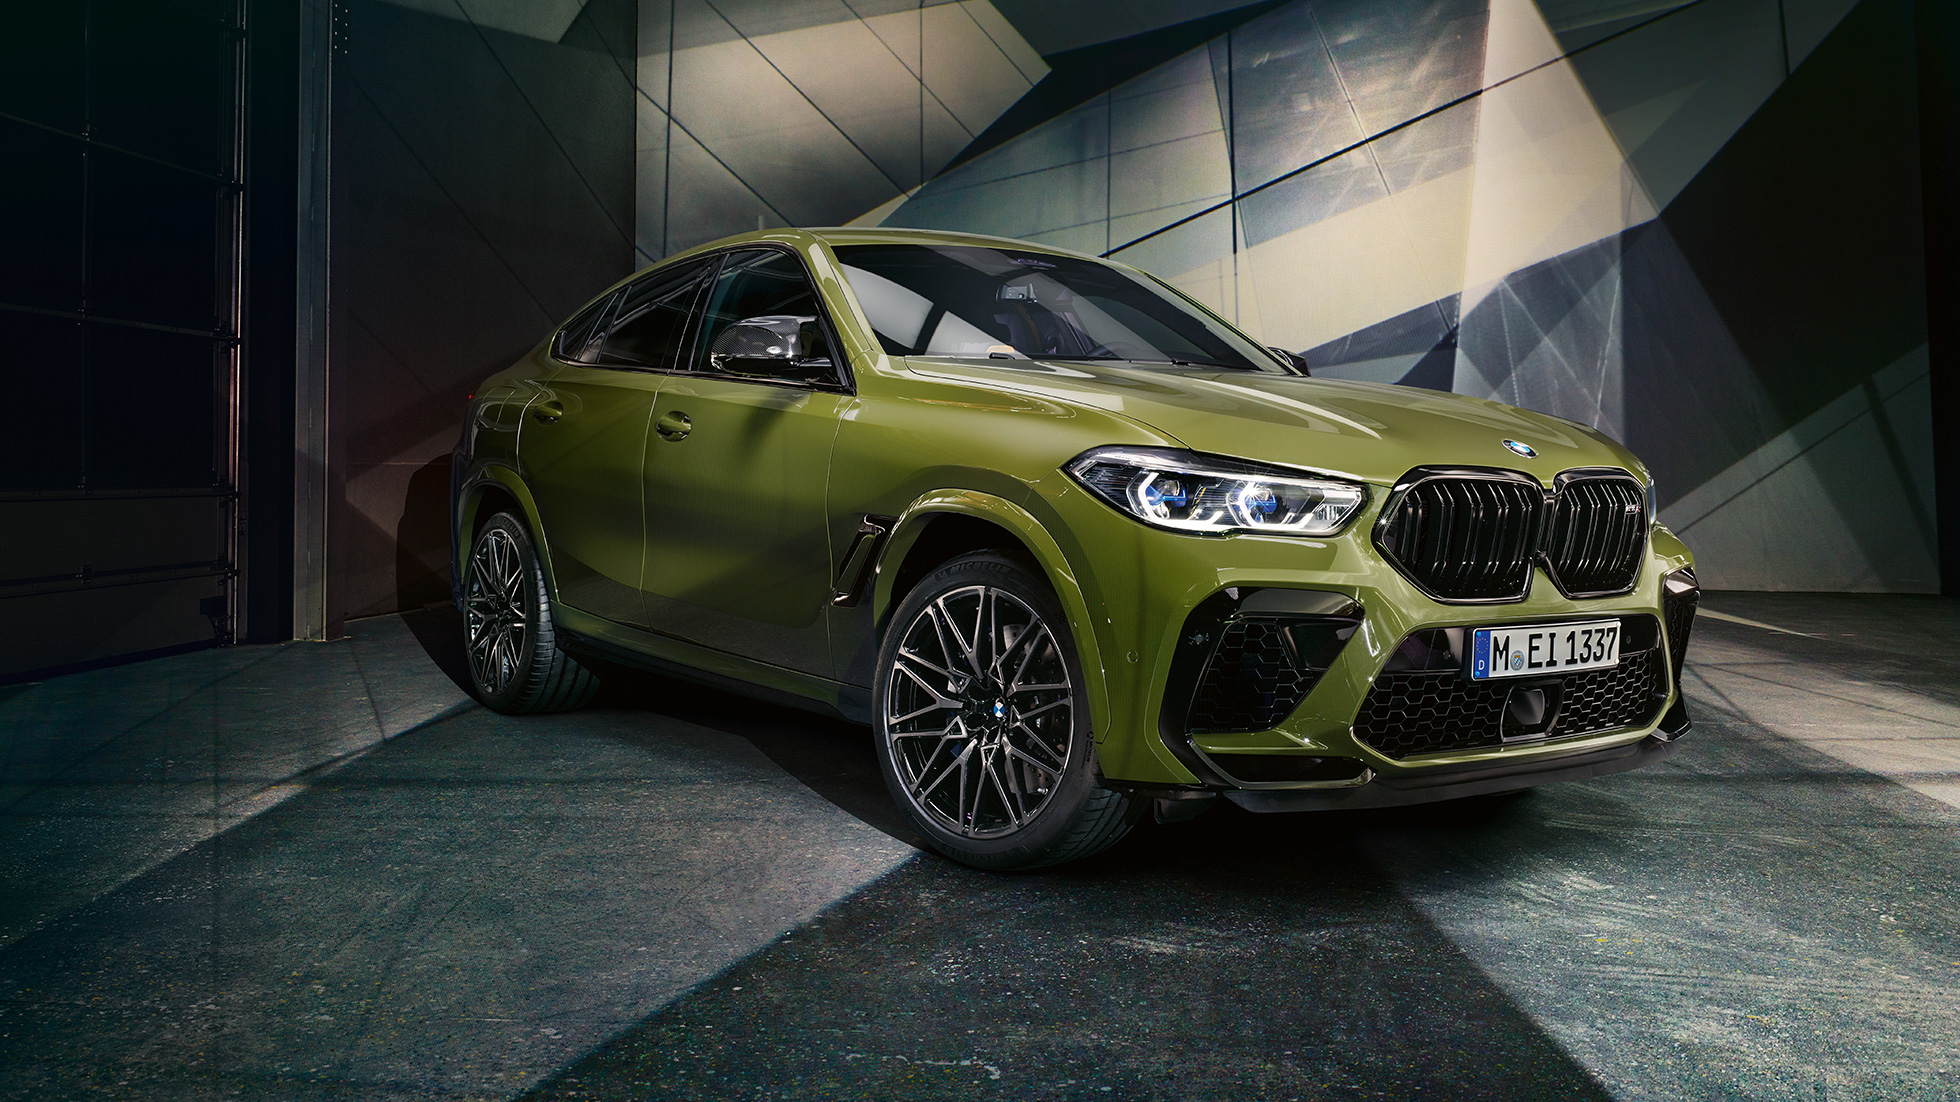 M double kidney grille BMW X6 M Competition F96 BMW Individual Special Paint Urban Green SUV three-quarter front view